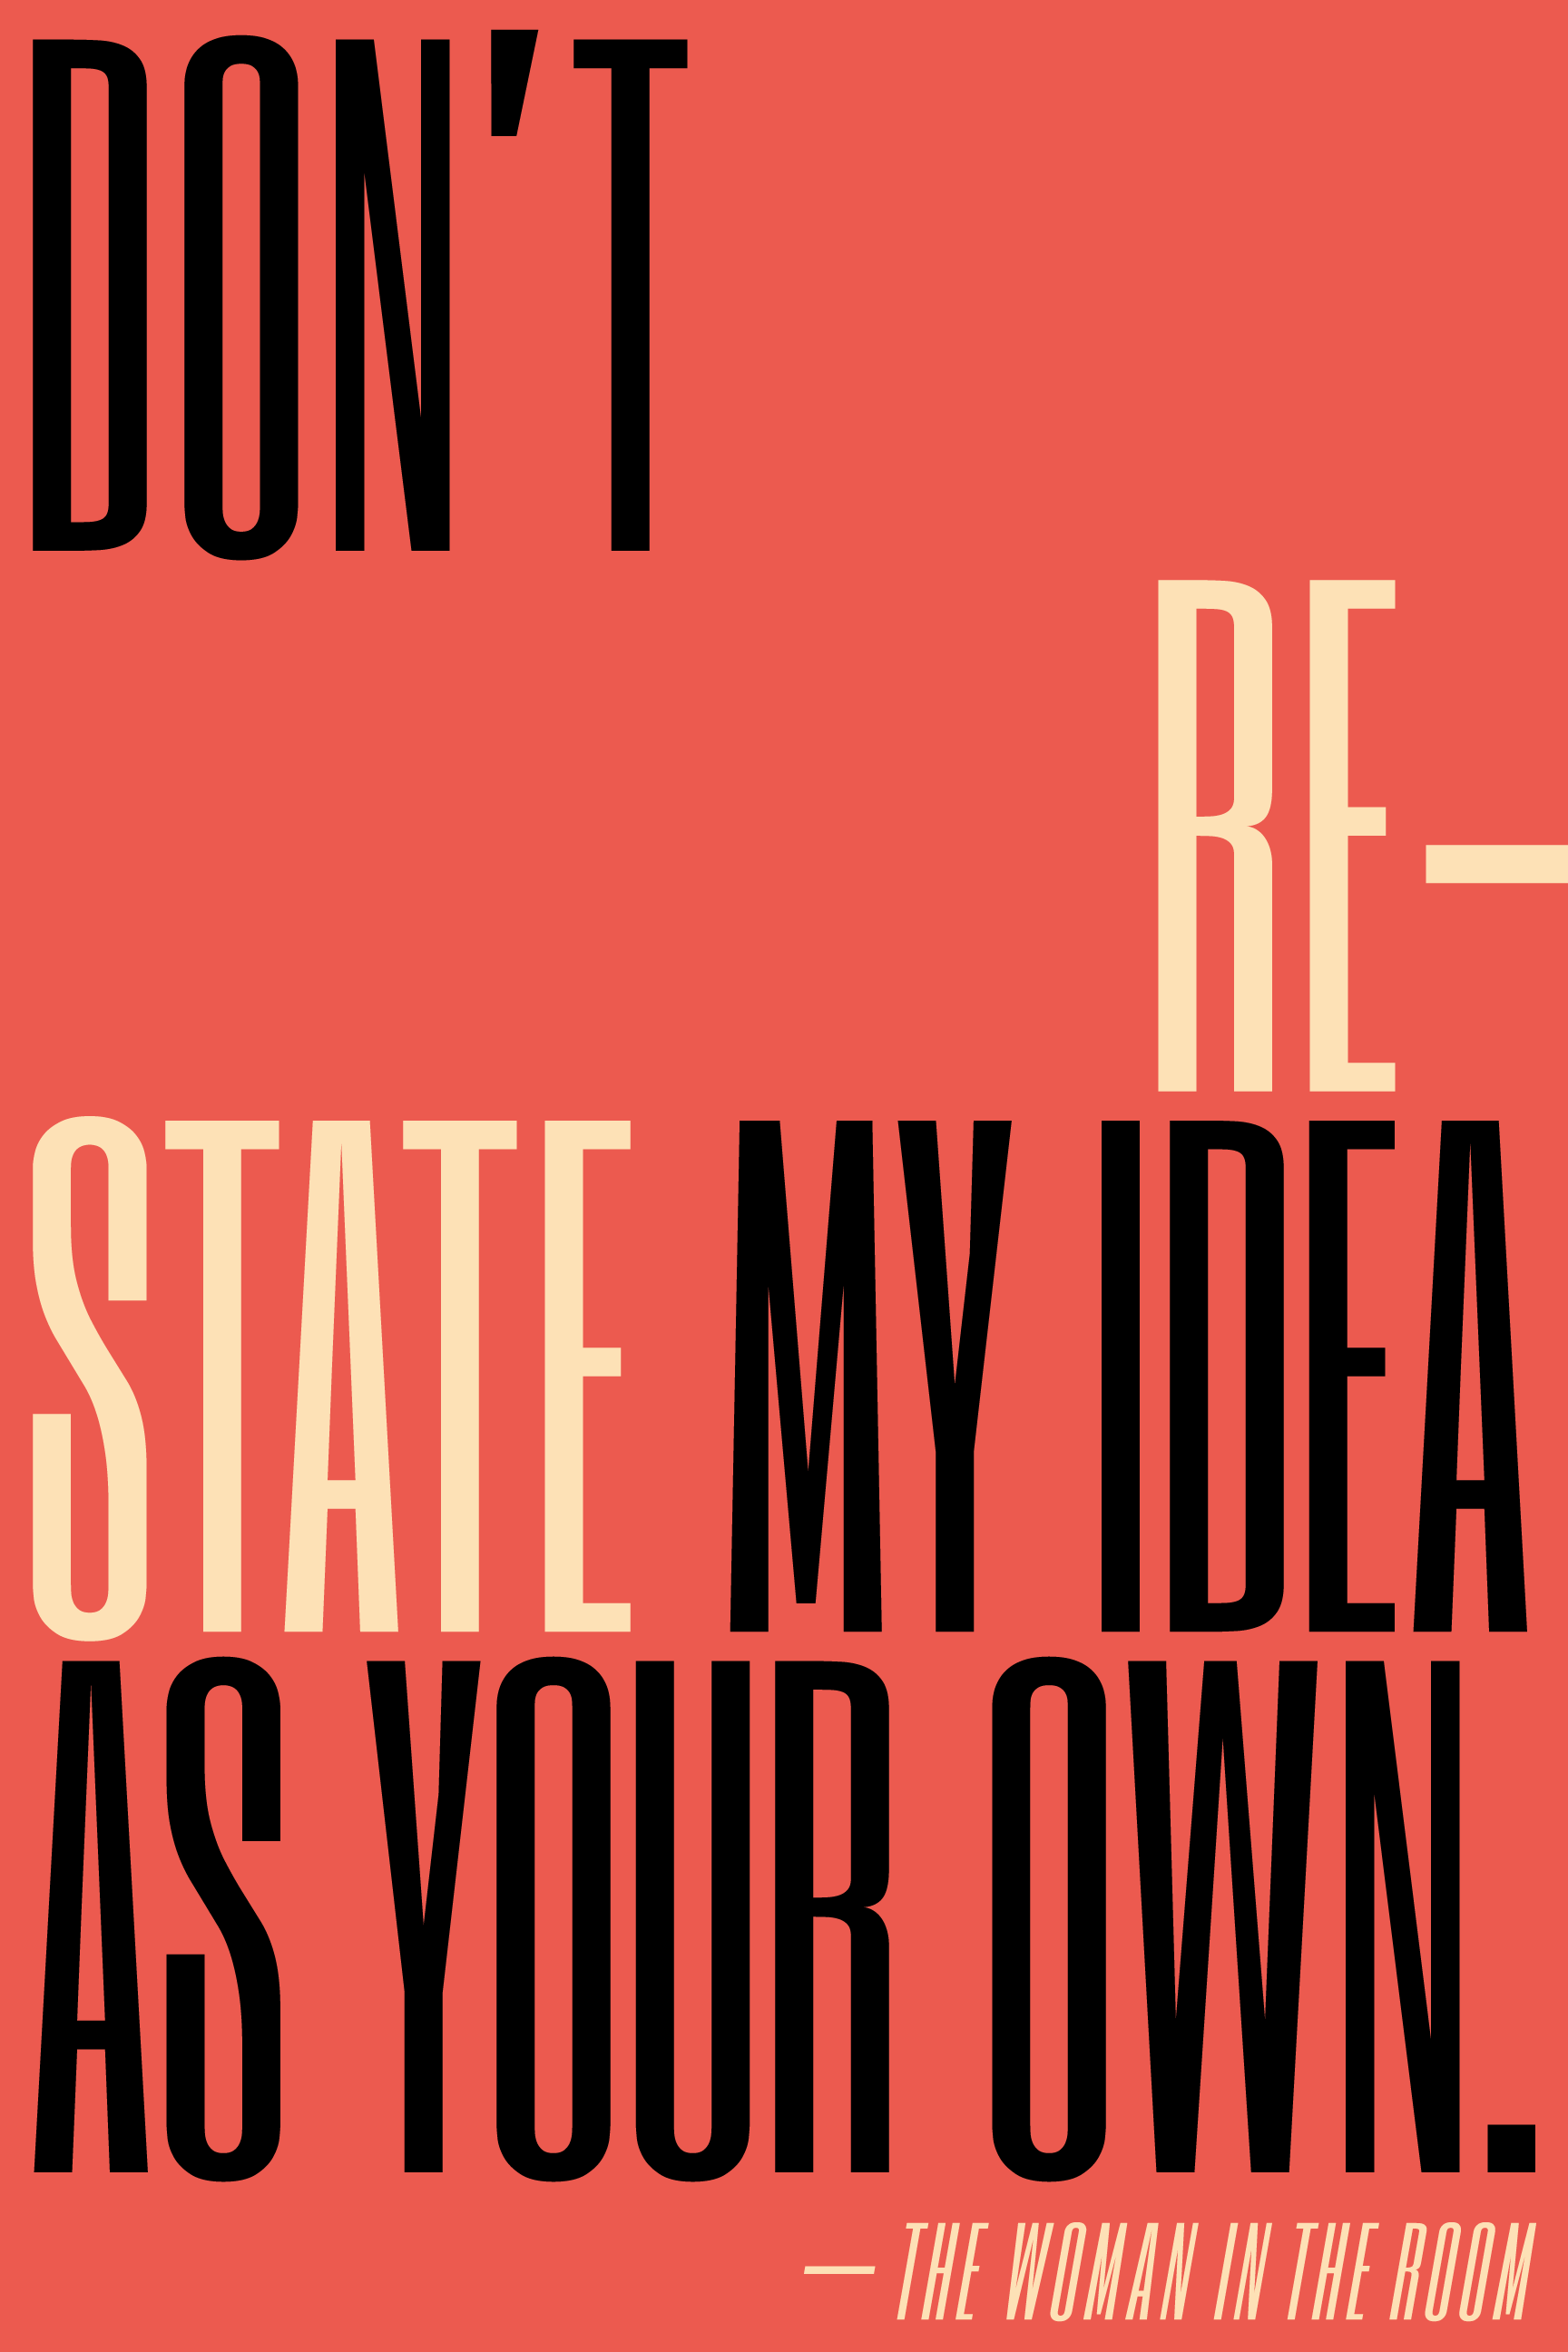 Don't restate my idea as your own.